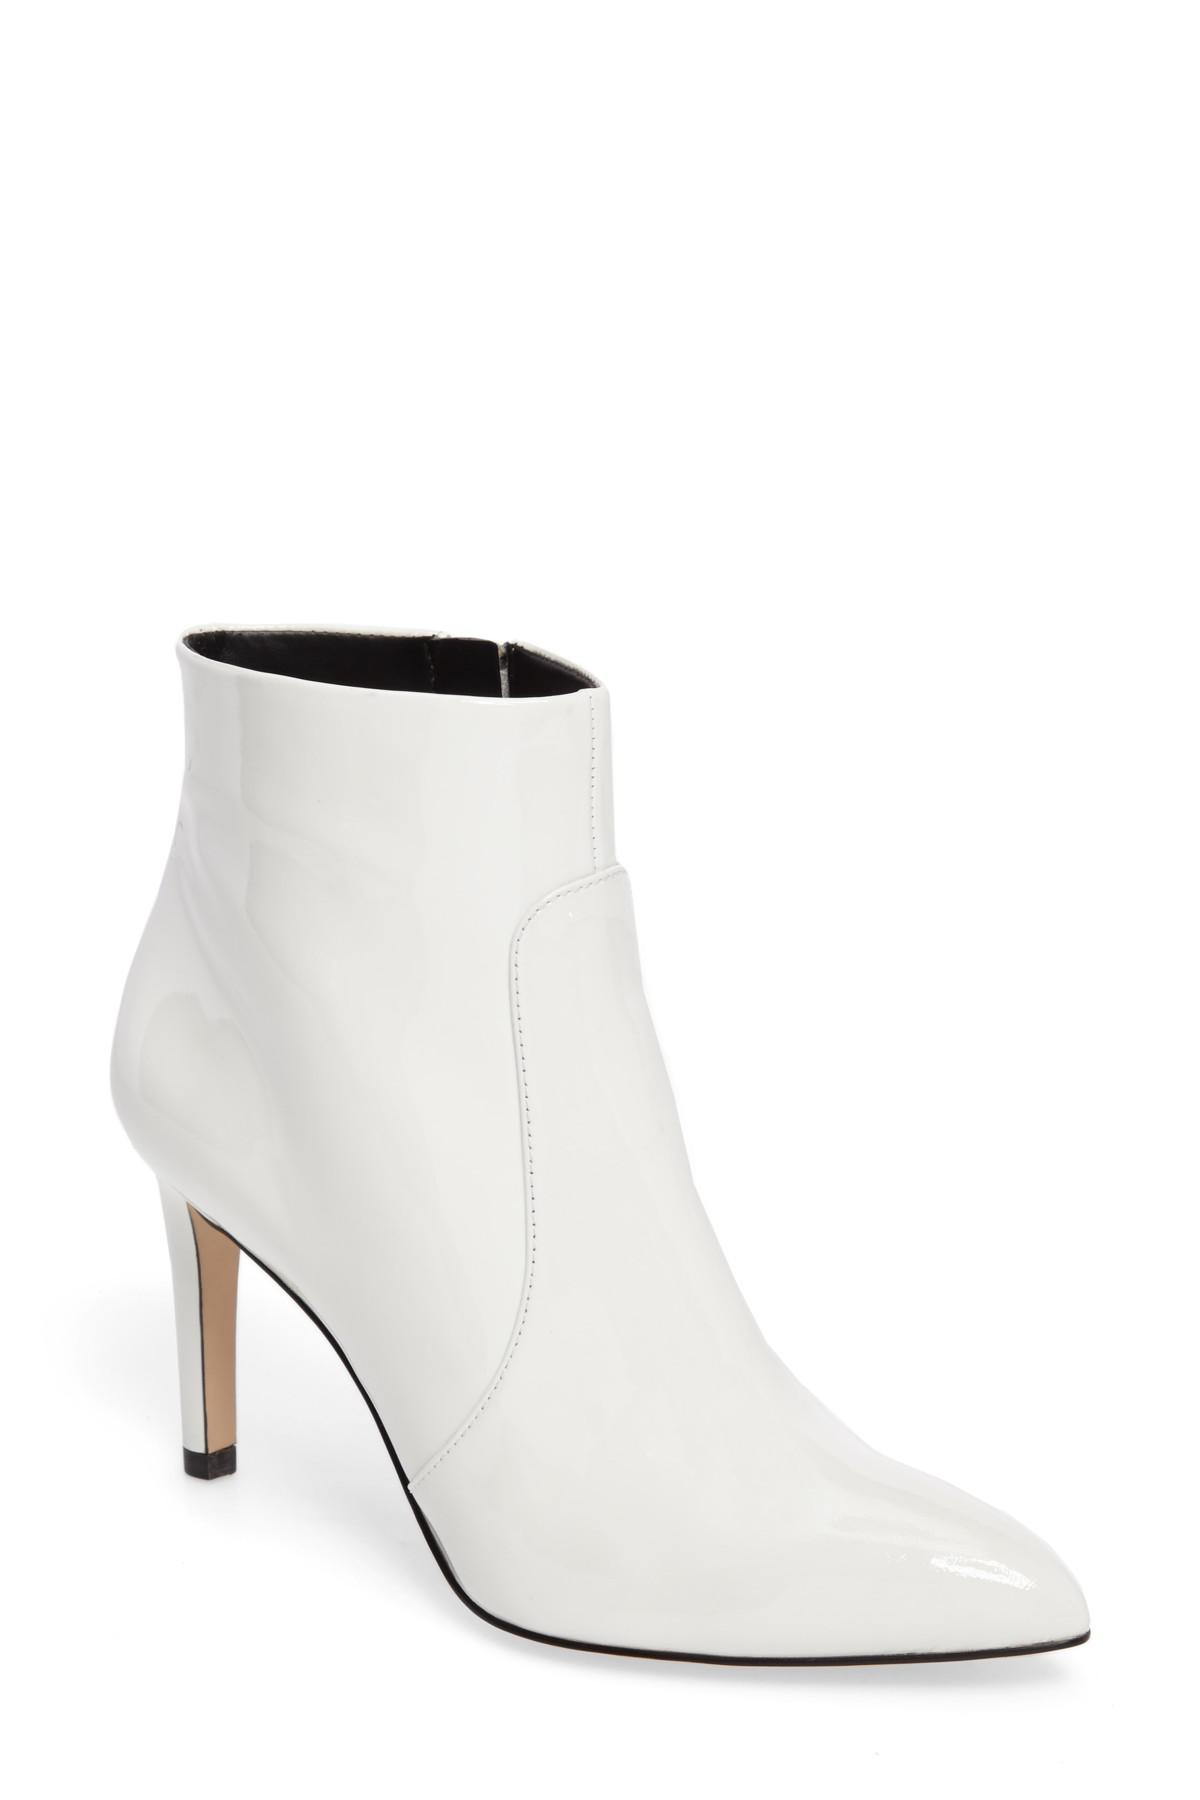 a47c67a526af85 Lyst - Sam Edelman Olette Pointy Toe Bootie in White